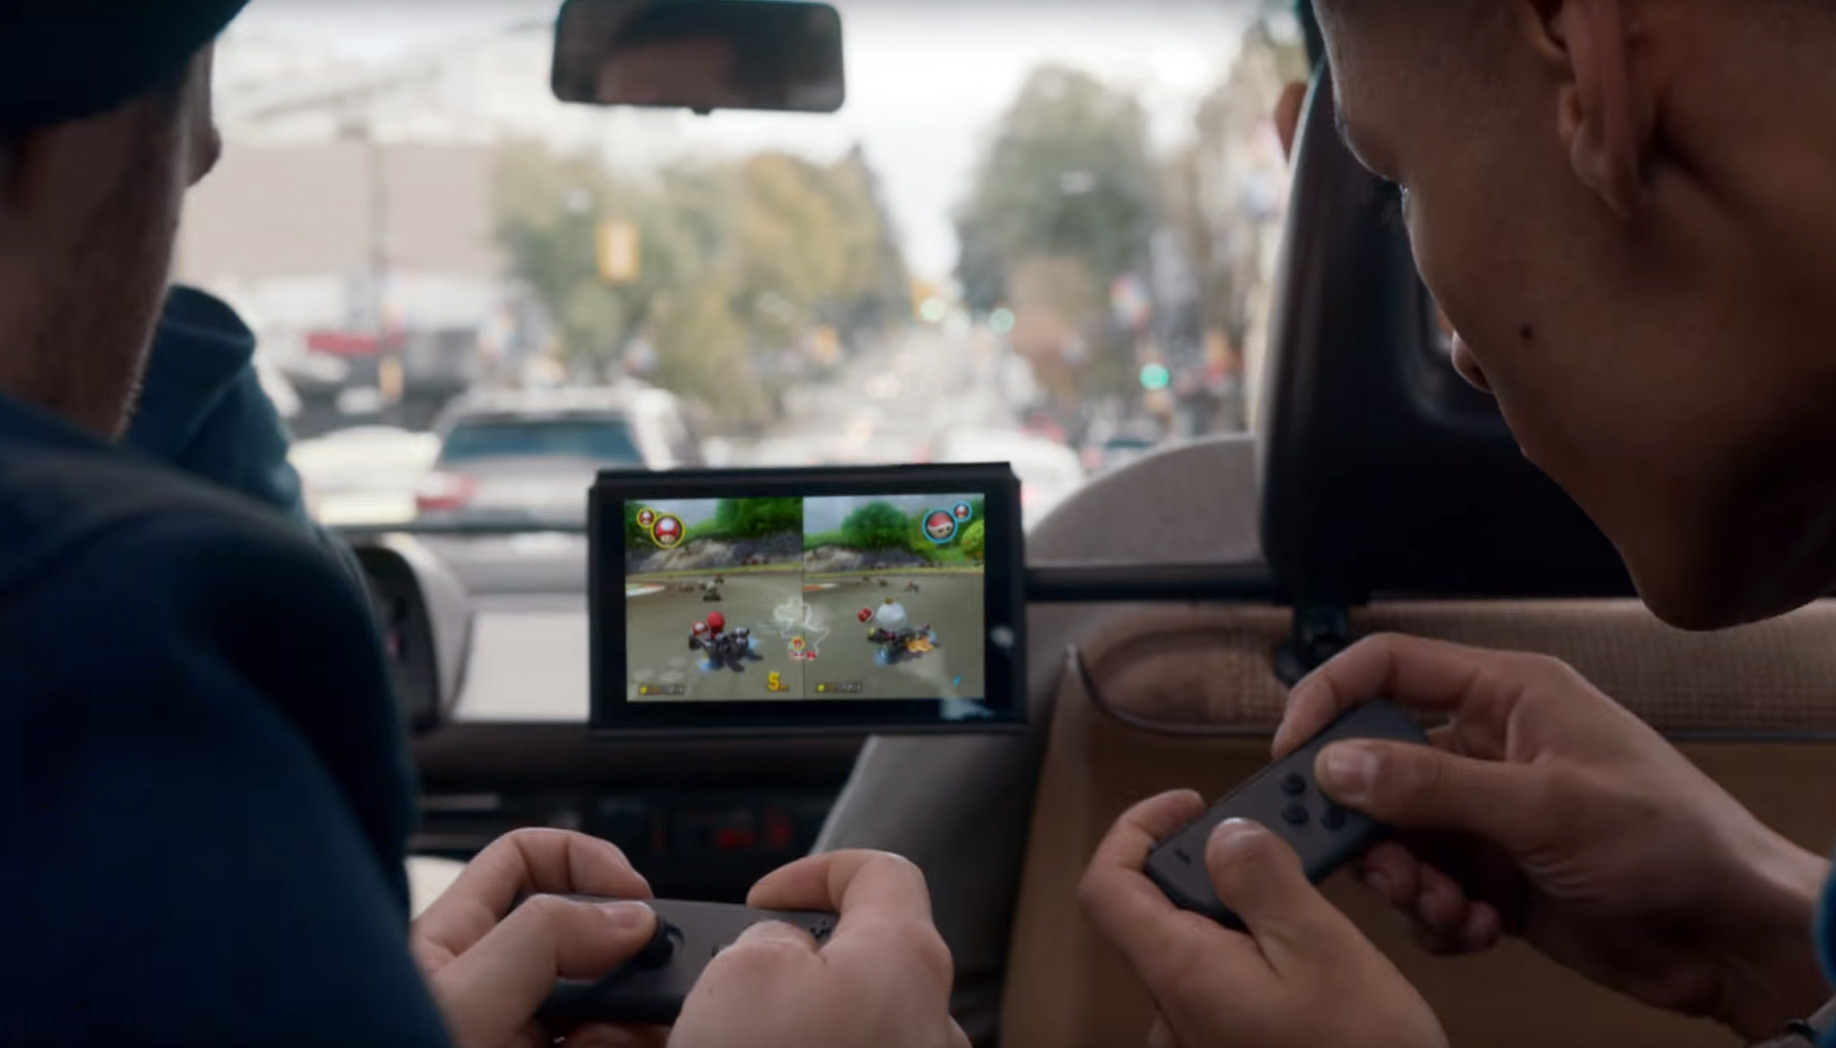 News The Nintendo Switch Offers Portable And Home Gaming